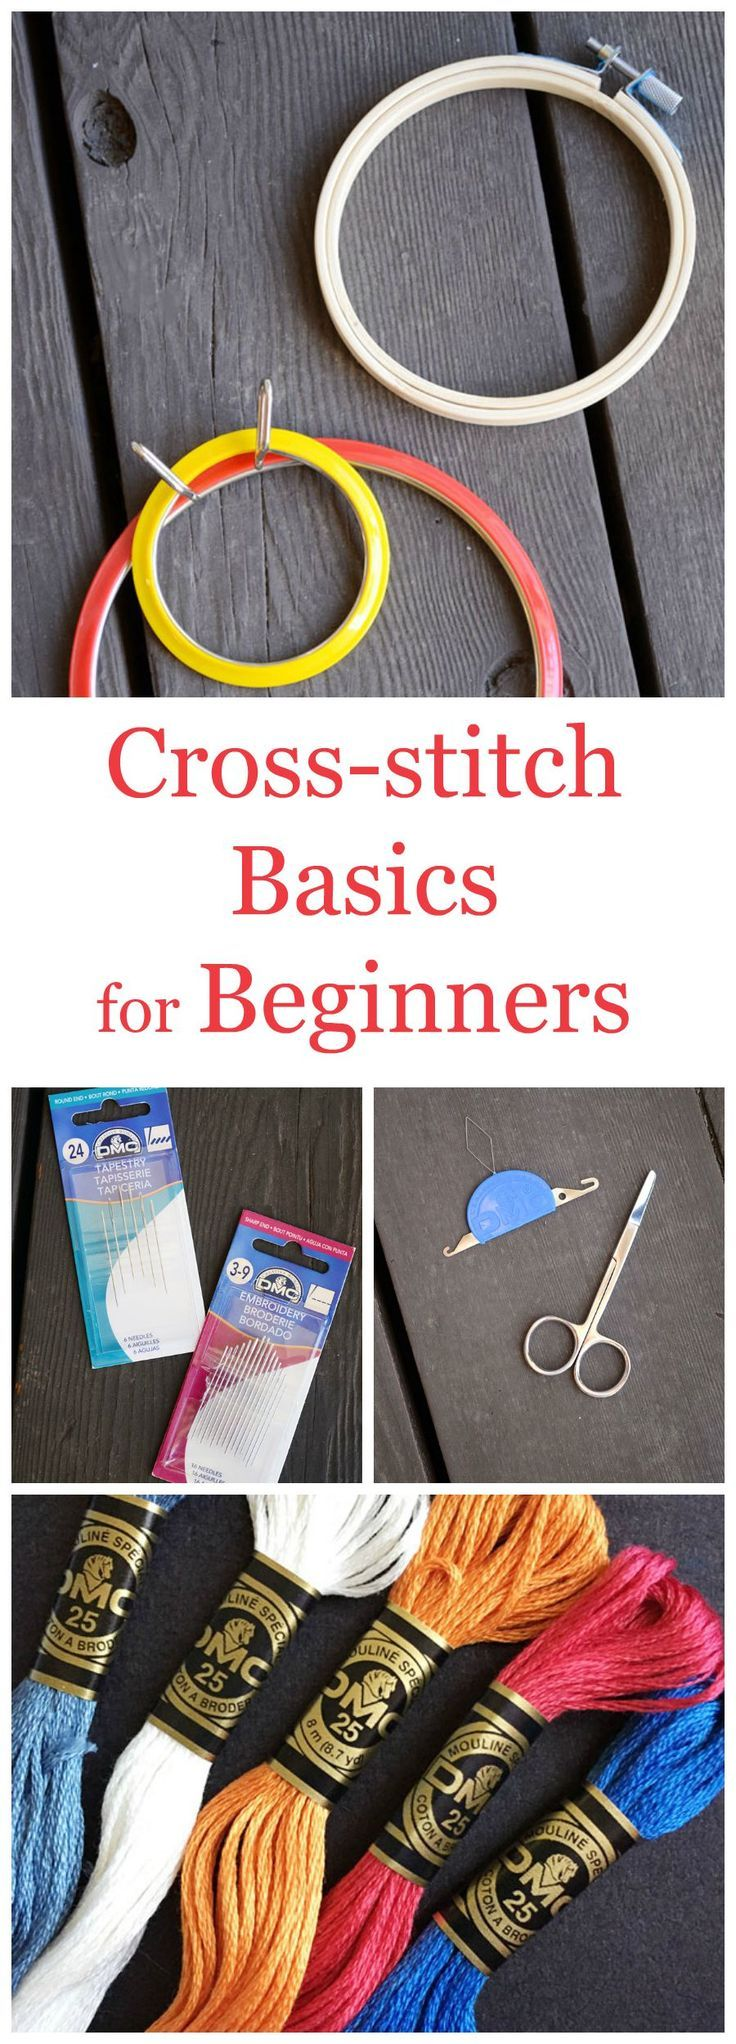 Tutorial: Easily learn how to cross-stitch with these simple basics for beginners.   Storypiece.net